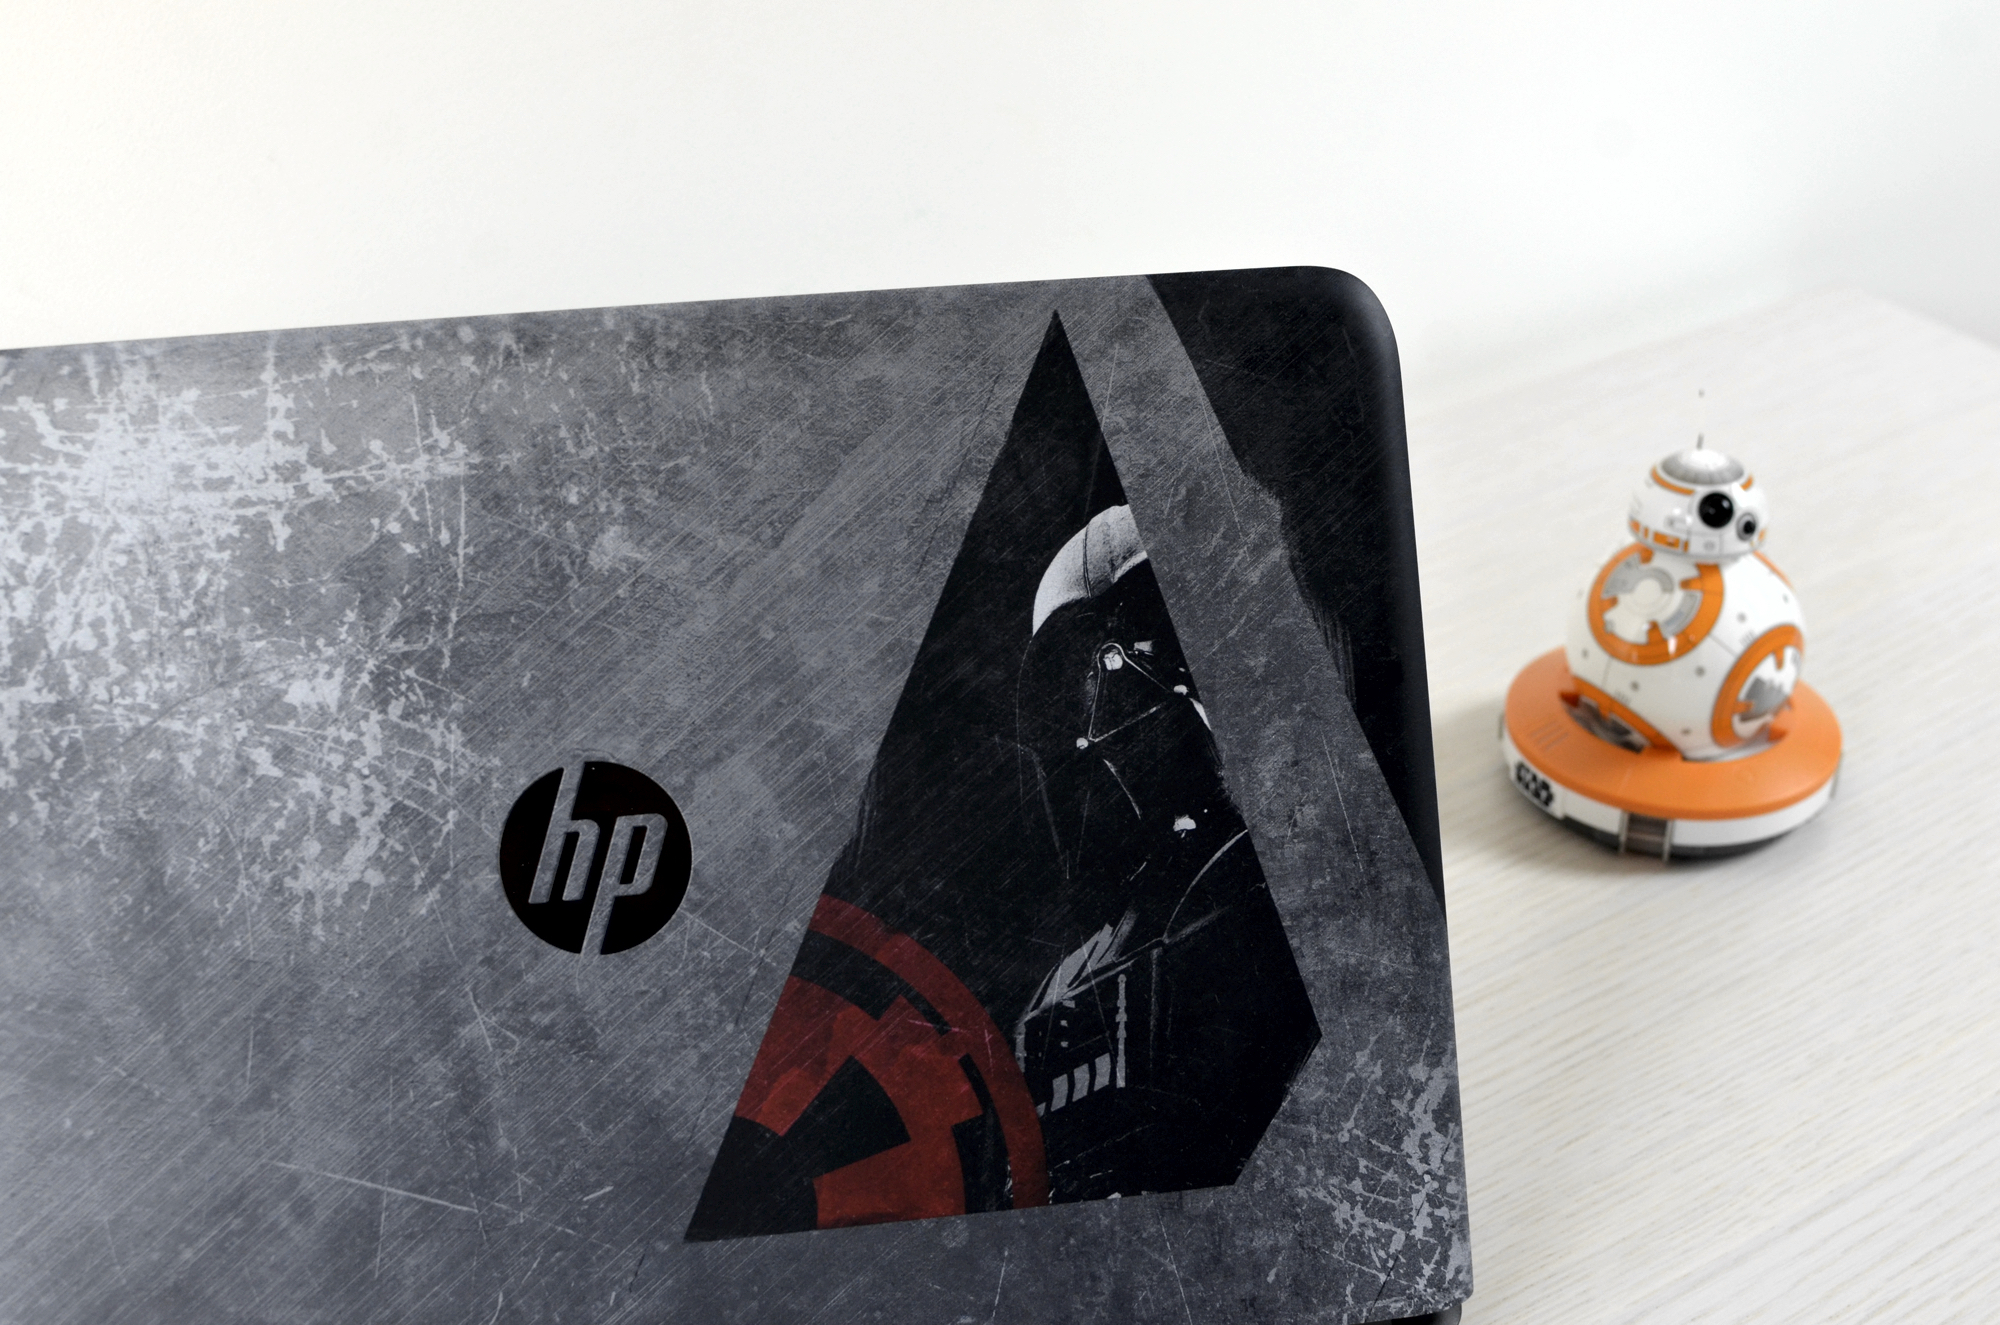 Foto de Portátil HP Star Wars (20/22)